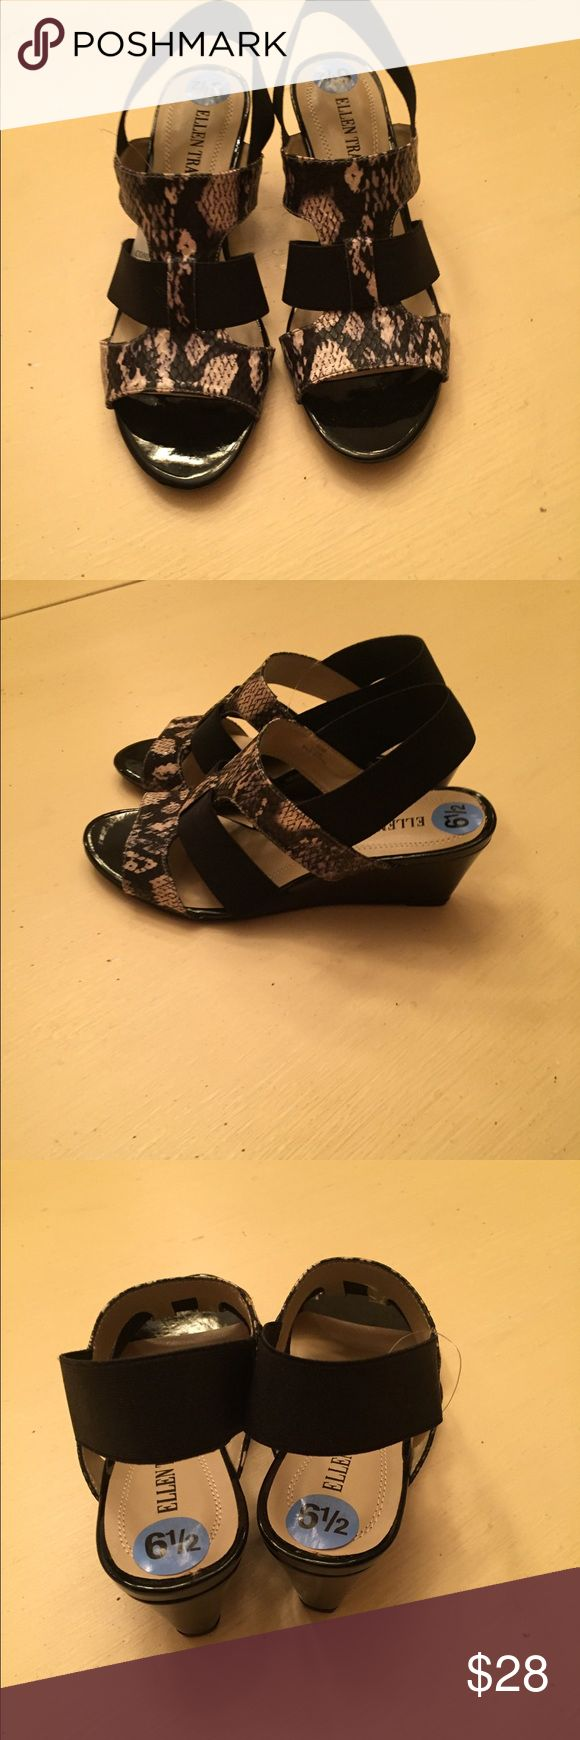 New with tags Ellen Tracy sandals 61/2 Gray, black and cream sandals size 61/2 Ellen Tracy Shoes Sandals